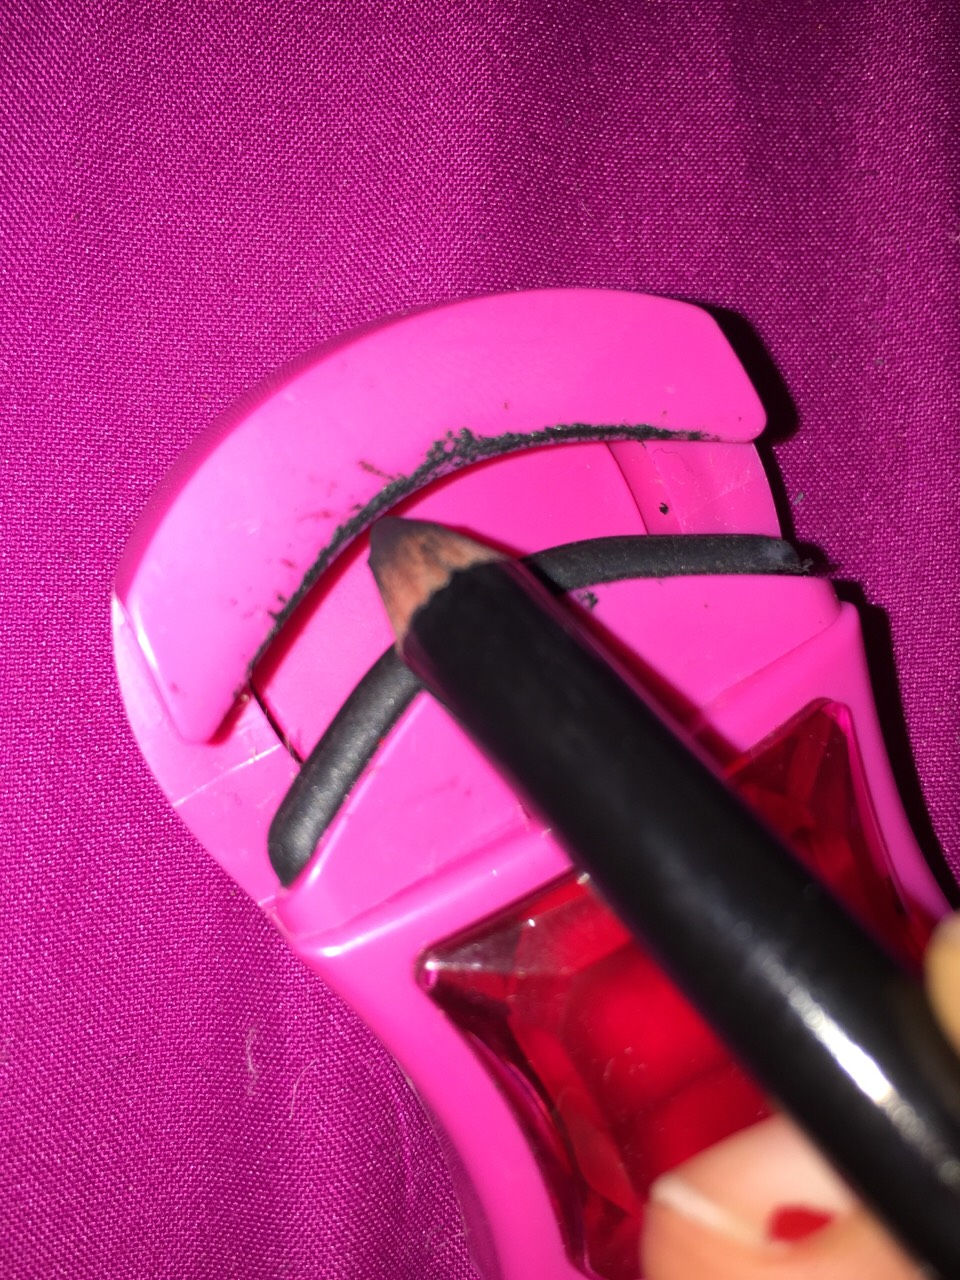 Applying pencil liner to the top of your eyelash curler and the curling the base of your lashes will apply top liner and save time.